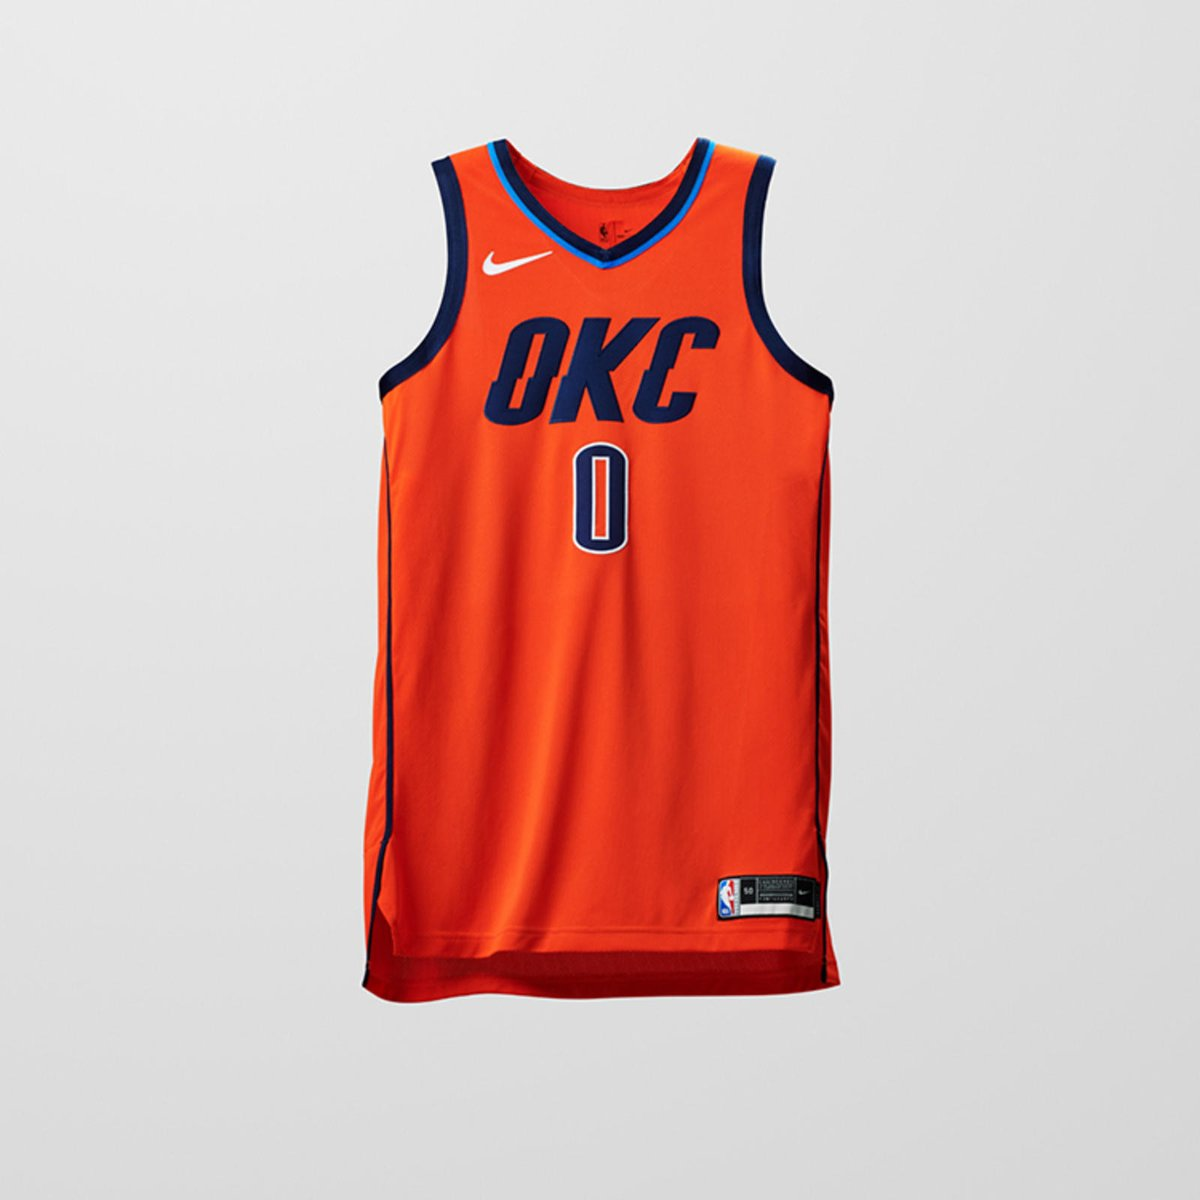 7a81761a0 OKC  Earned Edition  Uniform — UNISWAG